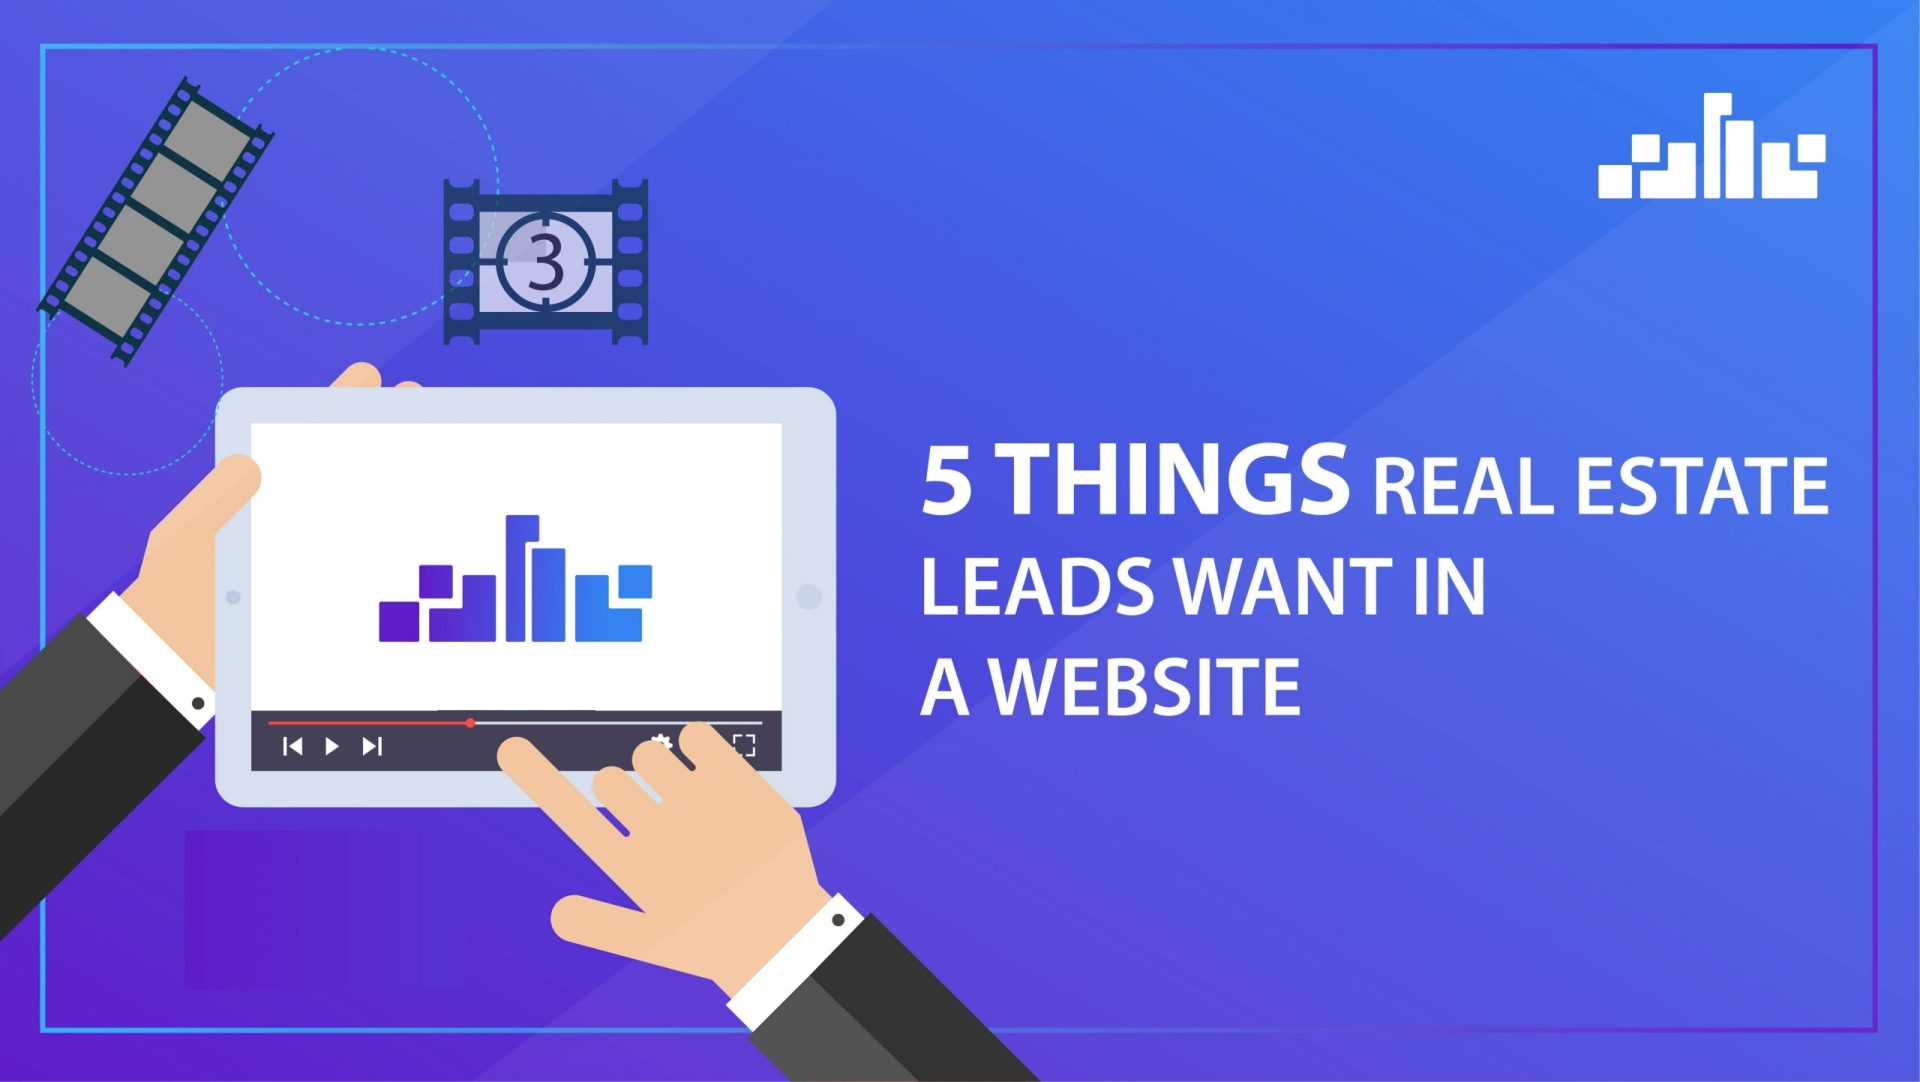 5 THINGS REAL ESTATE LEADS WANT IN A WEBSITE